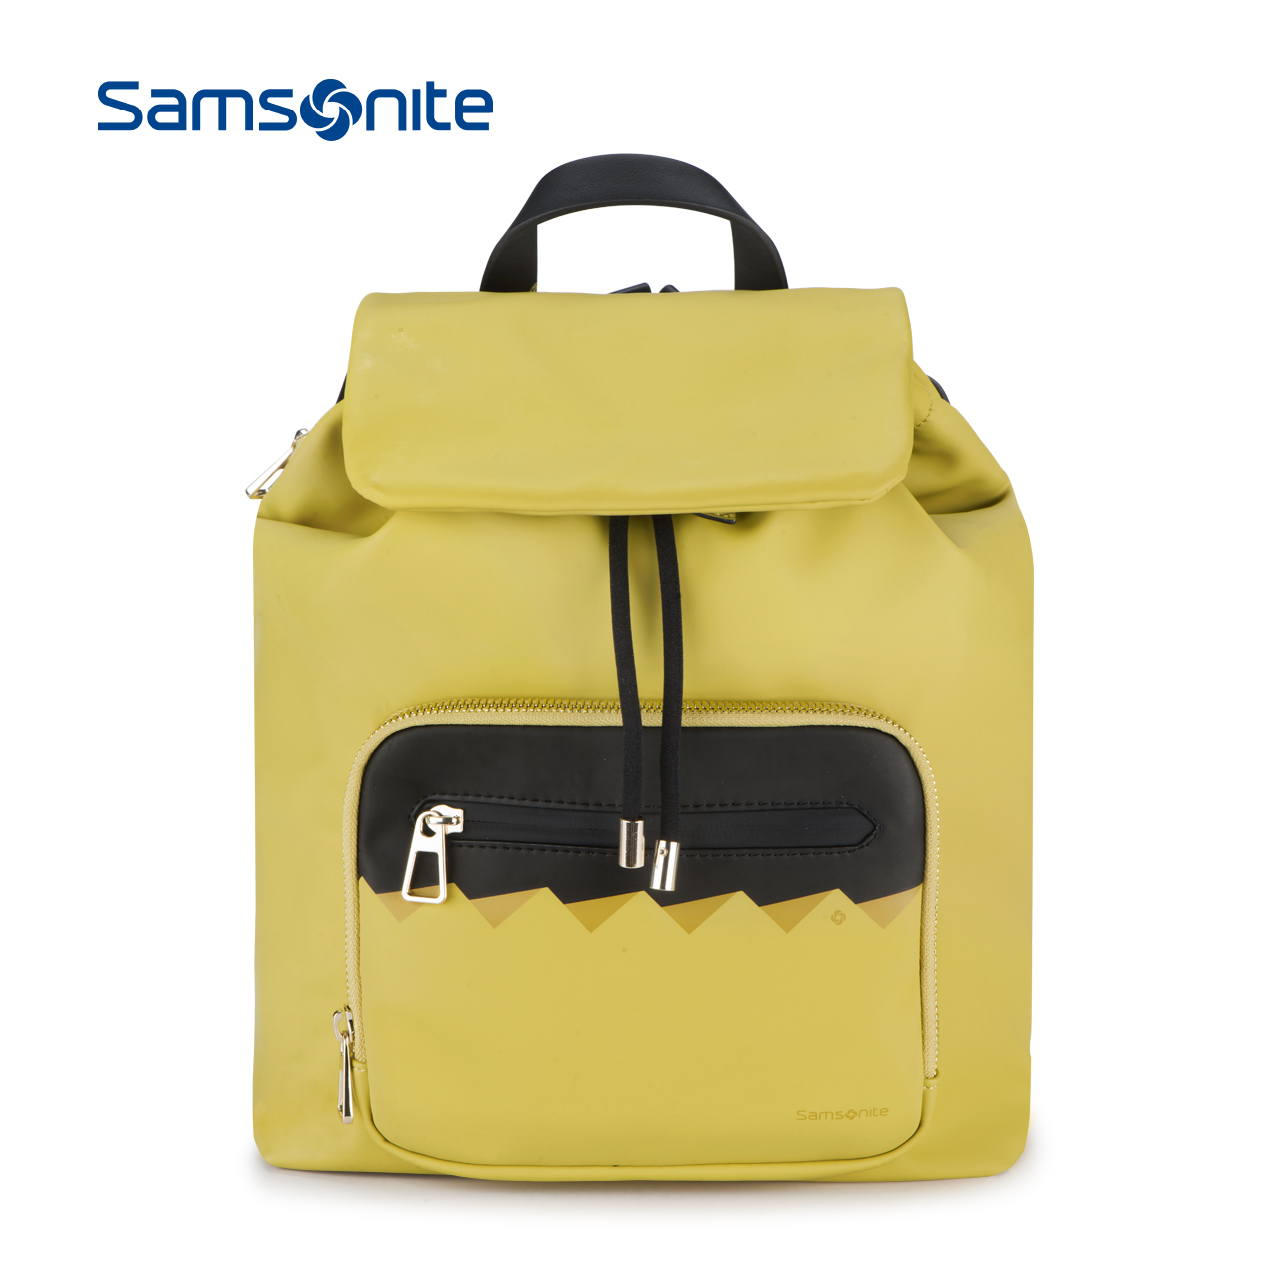 Samsonite-新秀丽时尚双肩包女士背包大容量背包休闲背包中号 CI4